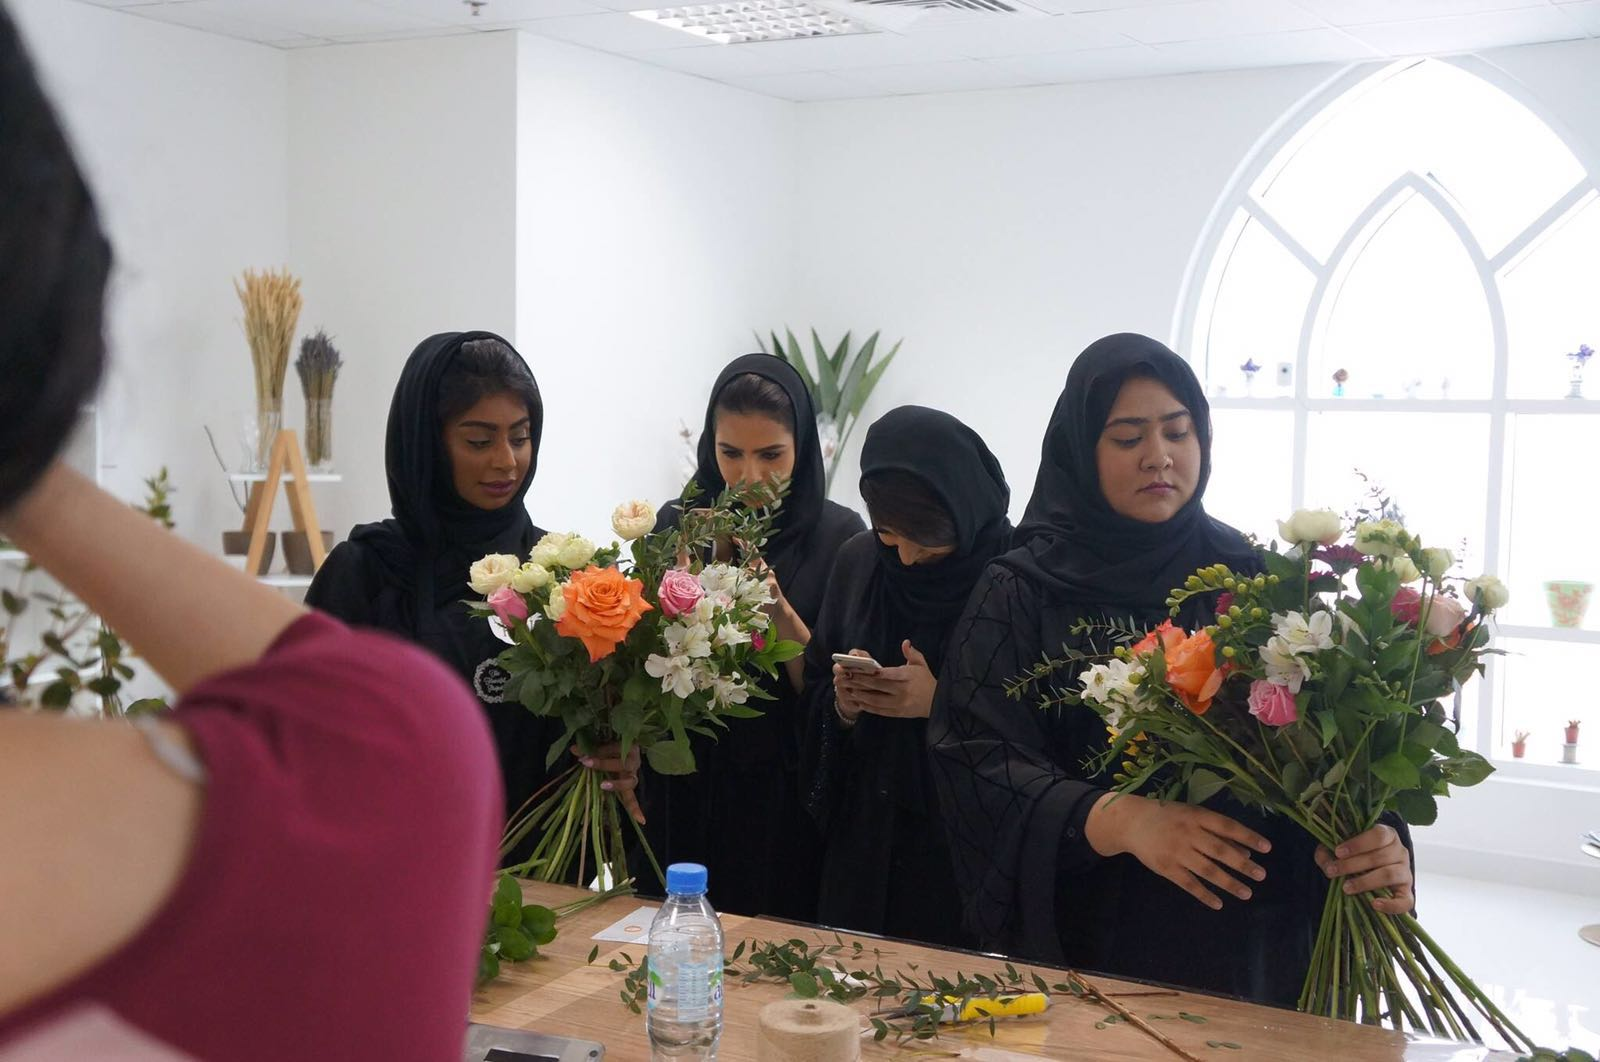 Flowerful project workshop participants